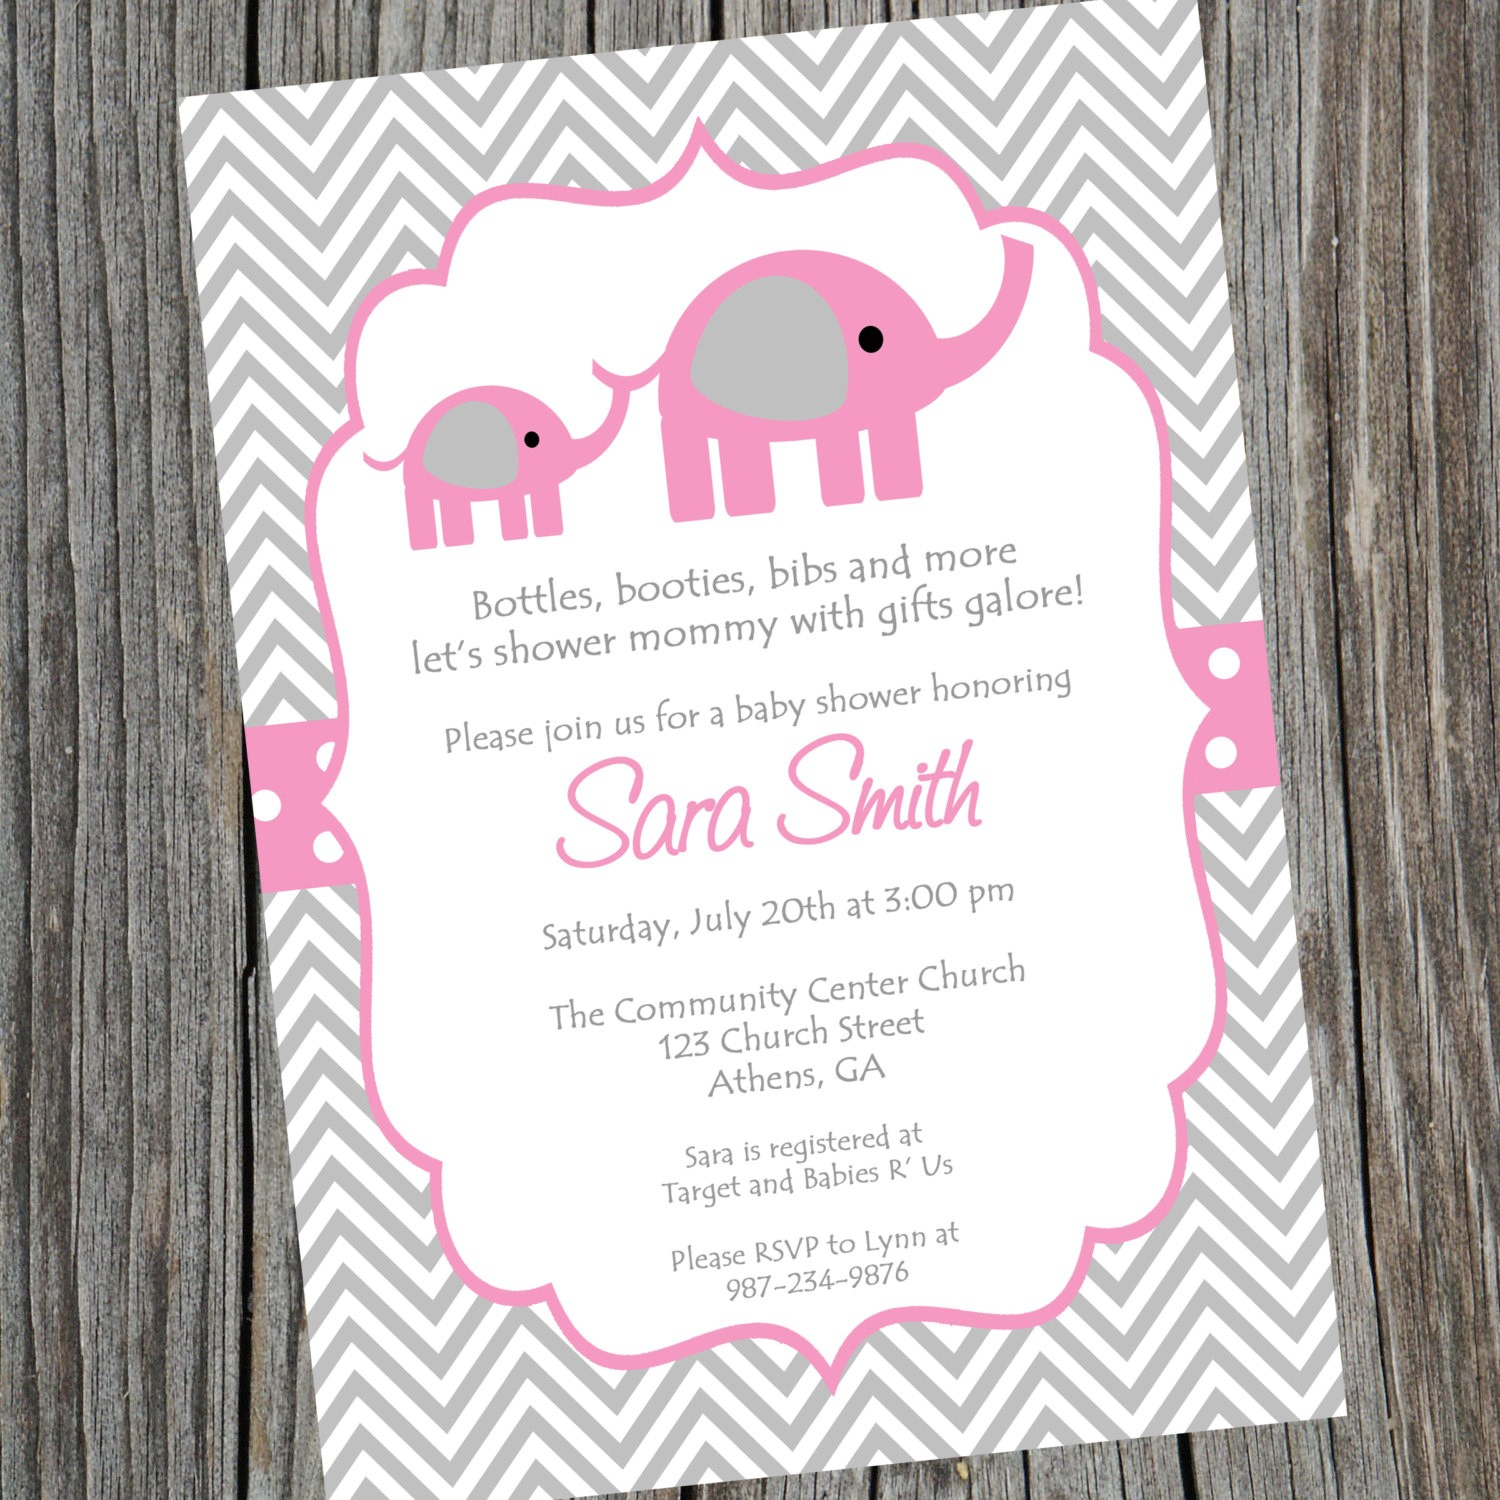 Full Size of Baby Shower:inspirational Elephant Baby Shower Invitations Photo Concepts Elephant Baby Shower Invitations Invitation For Baby Shower Fascinating Pink And Grey Elephant Baby